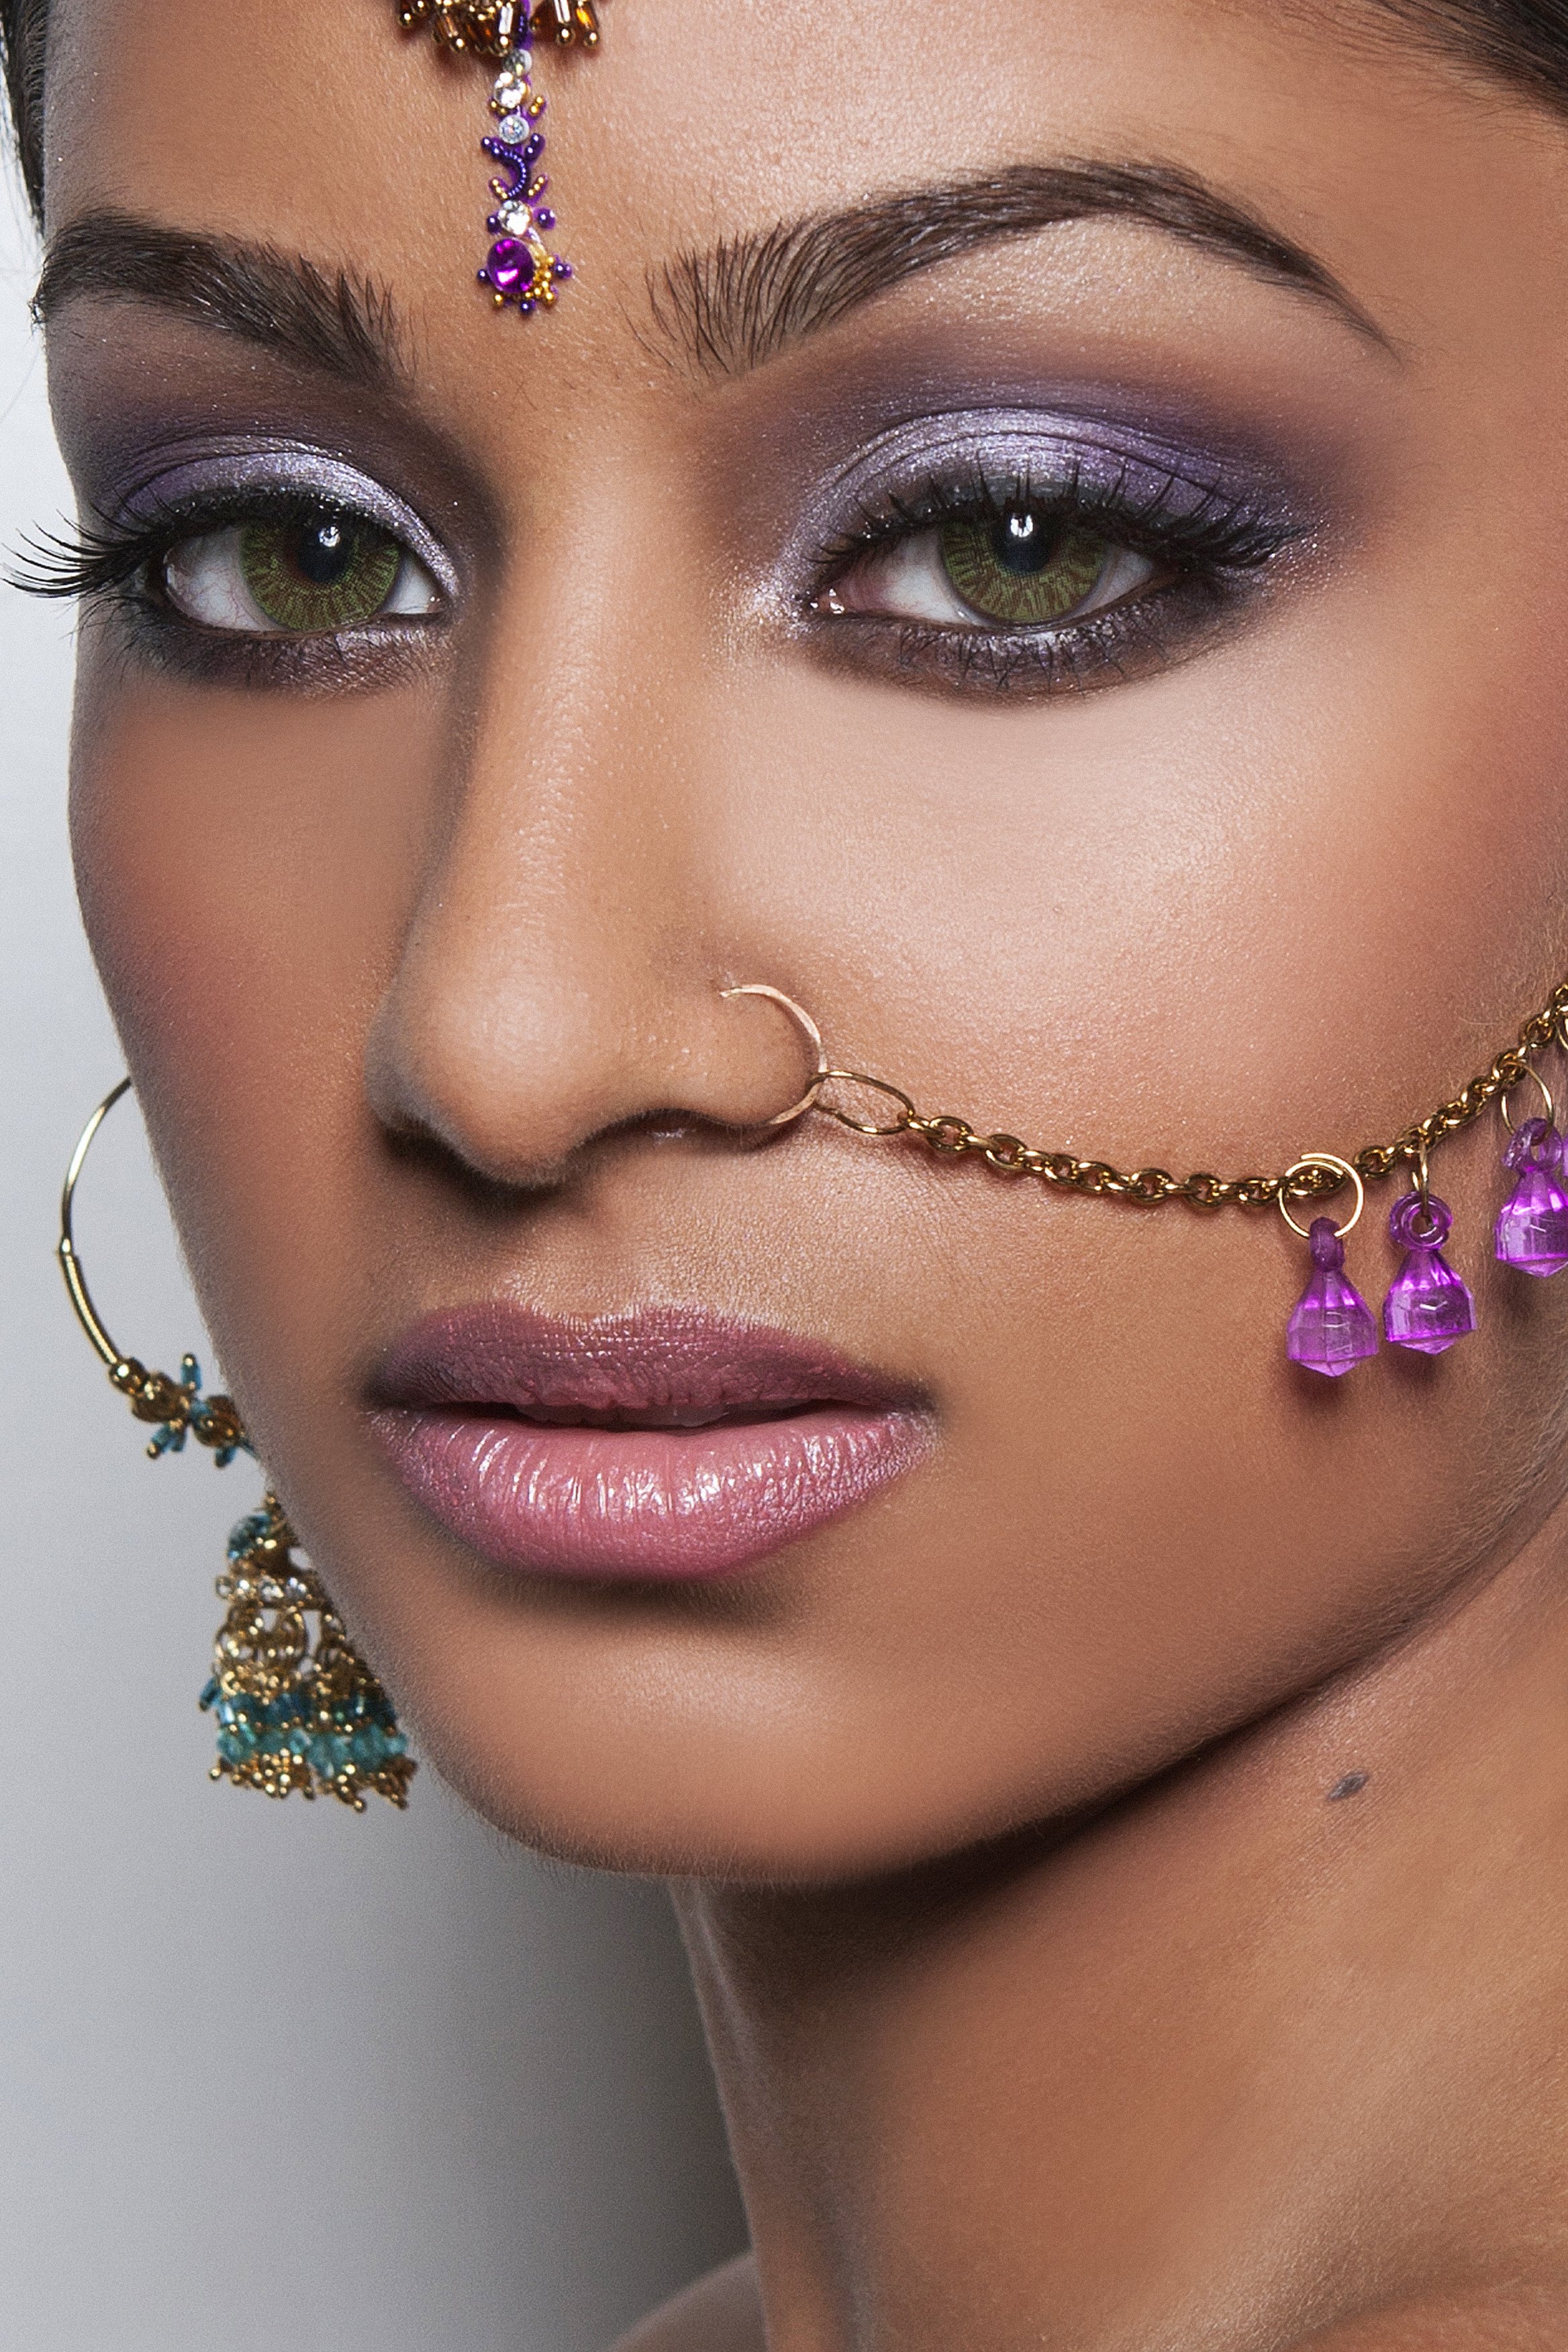 Indian Bridal Beauty - Makeup By MiMi J.